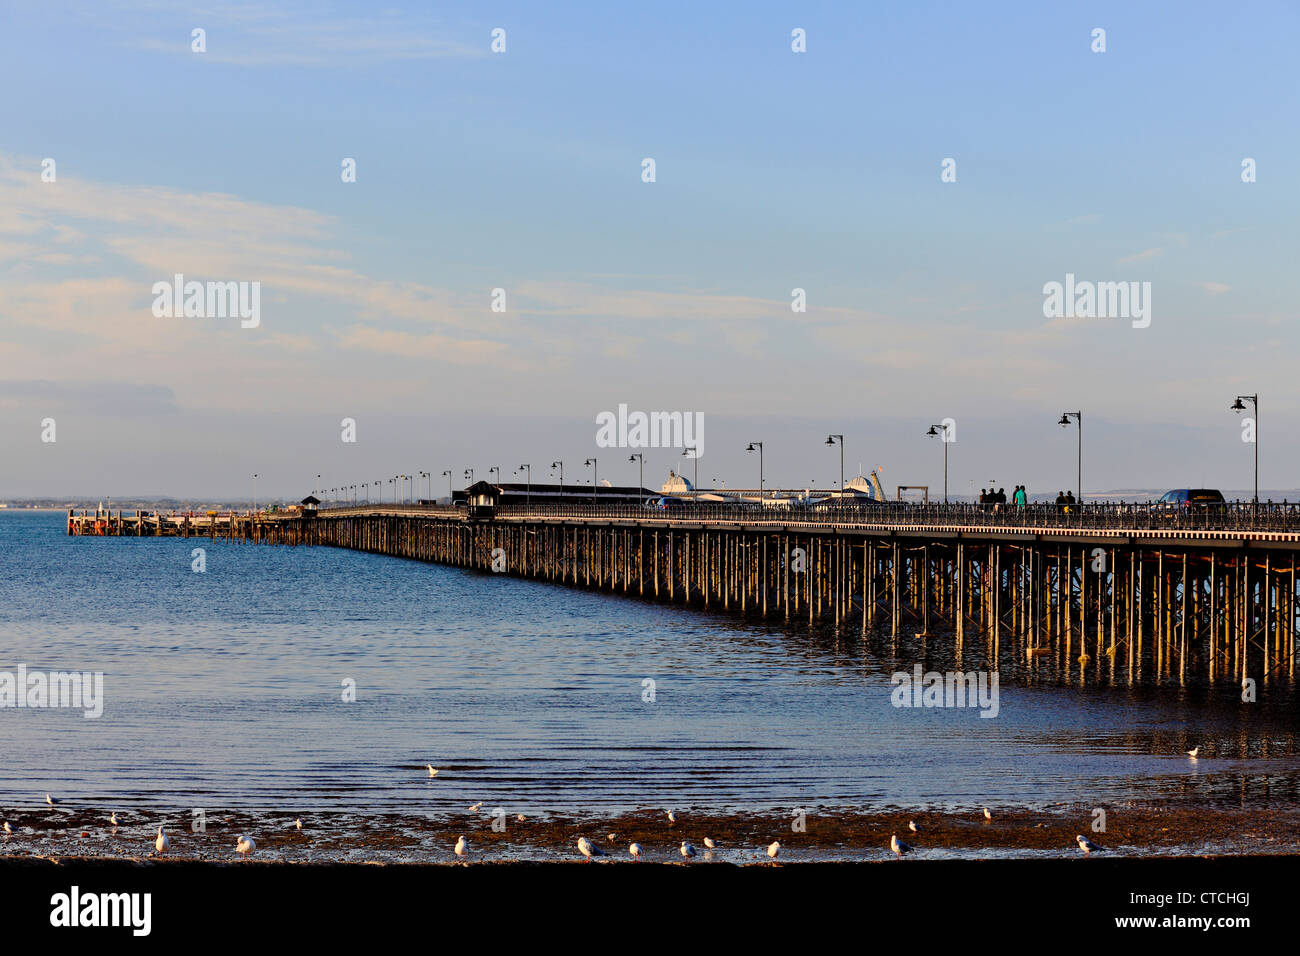 4151. The Pier, Ryde, Isle of Wight, UK - Stock Image